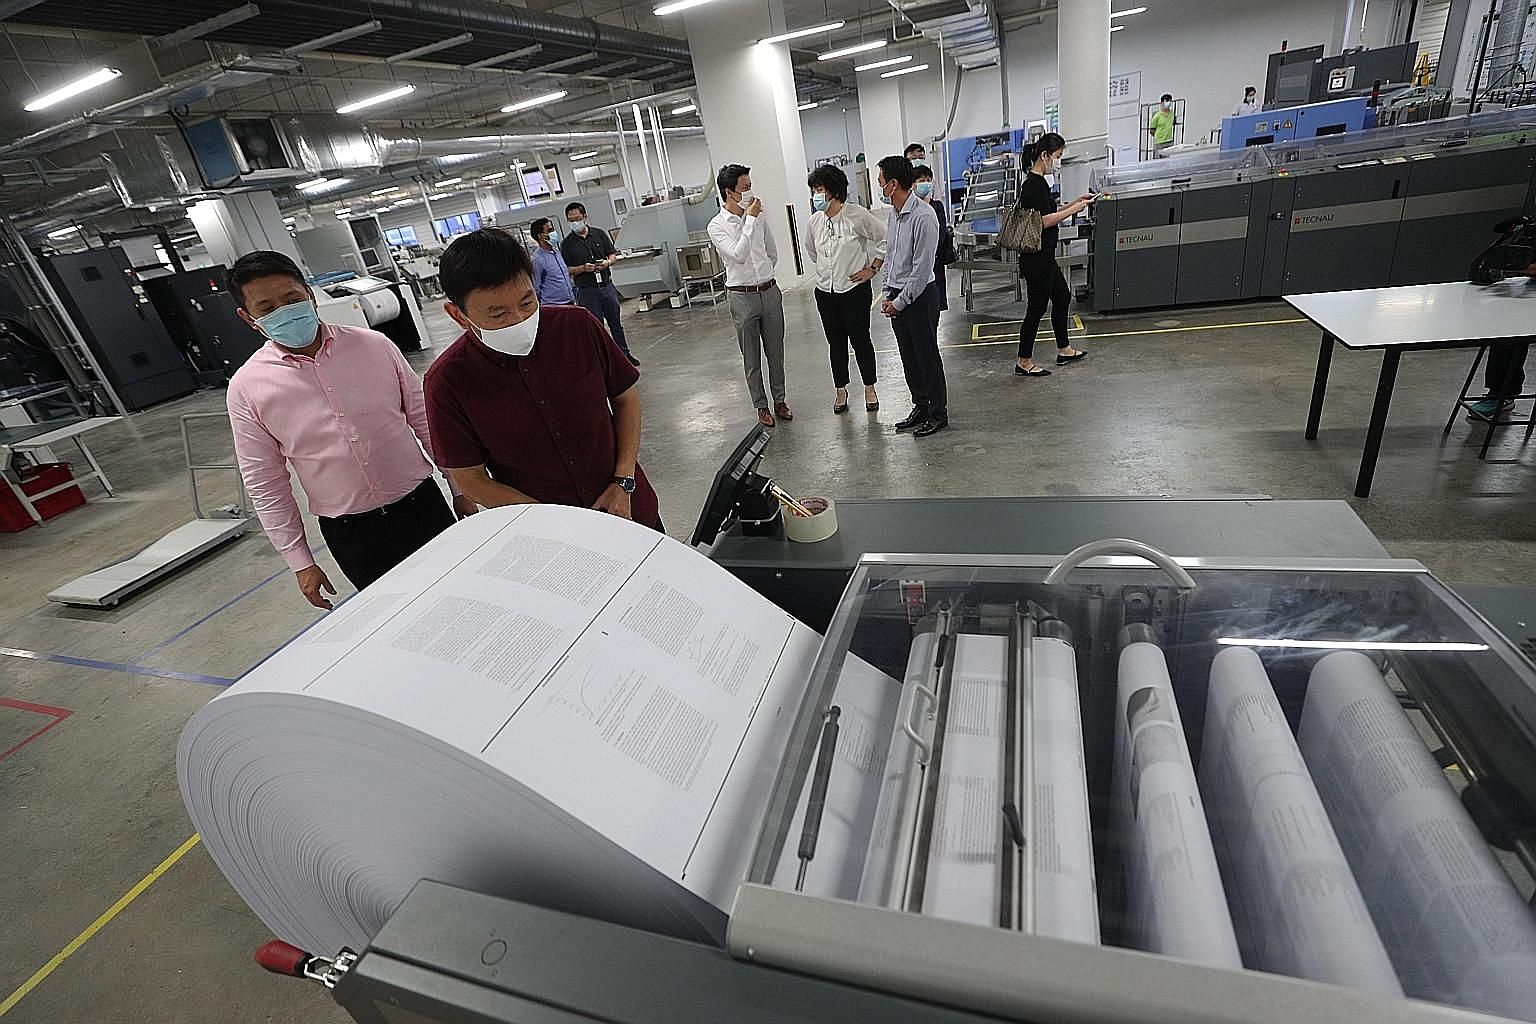 Senior Minister of State for Trade and Industry Chee Hong Tat checking out the printing process at Markono Content Solutions' facility in Pioneer yesterday as the company's managing director Edwin Ng looked on. ST PHOTO: TIMOTHY DAVID